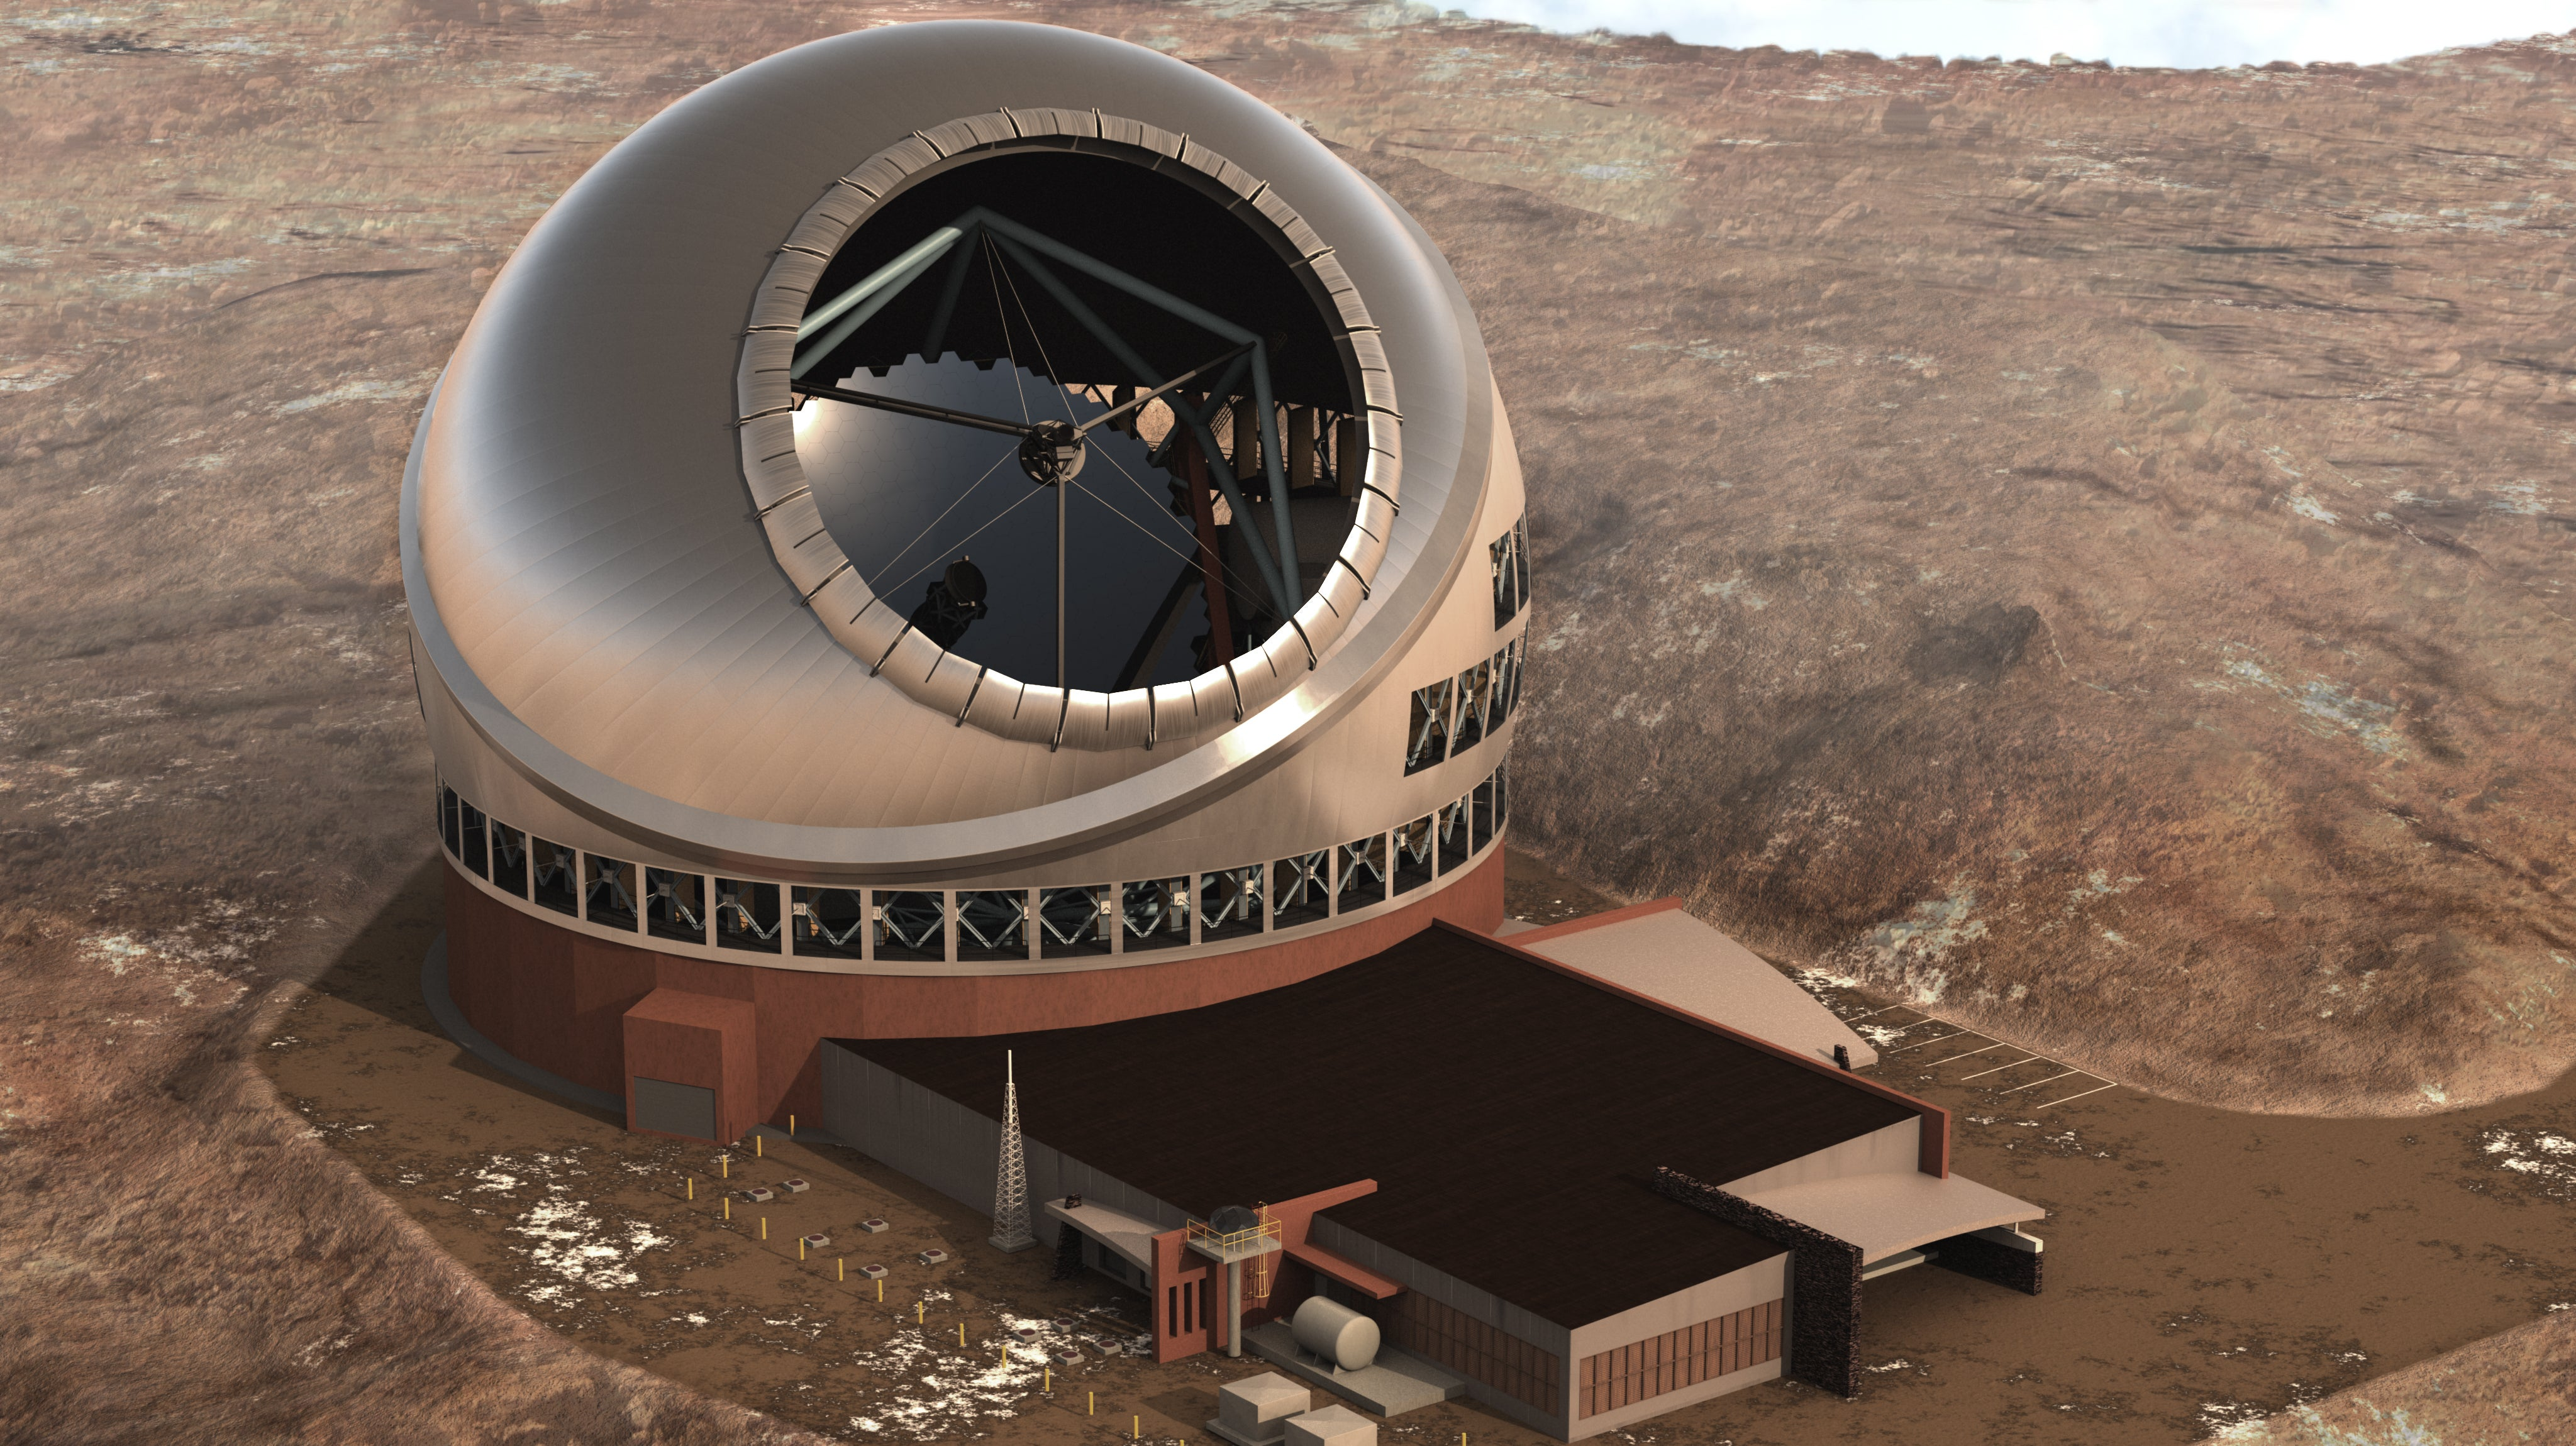 The World's Largest Telescope Is Finally Getting Underway